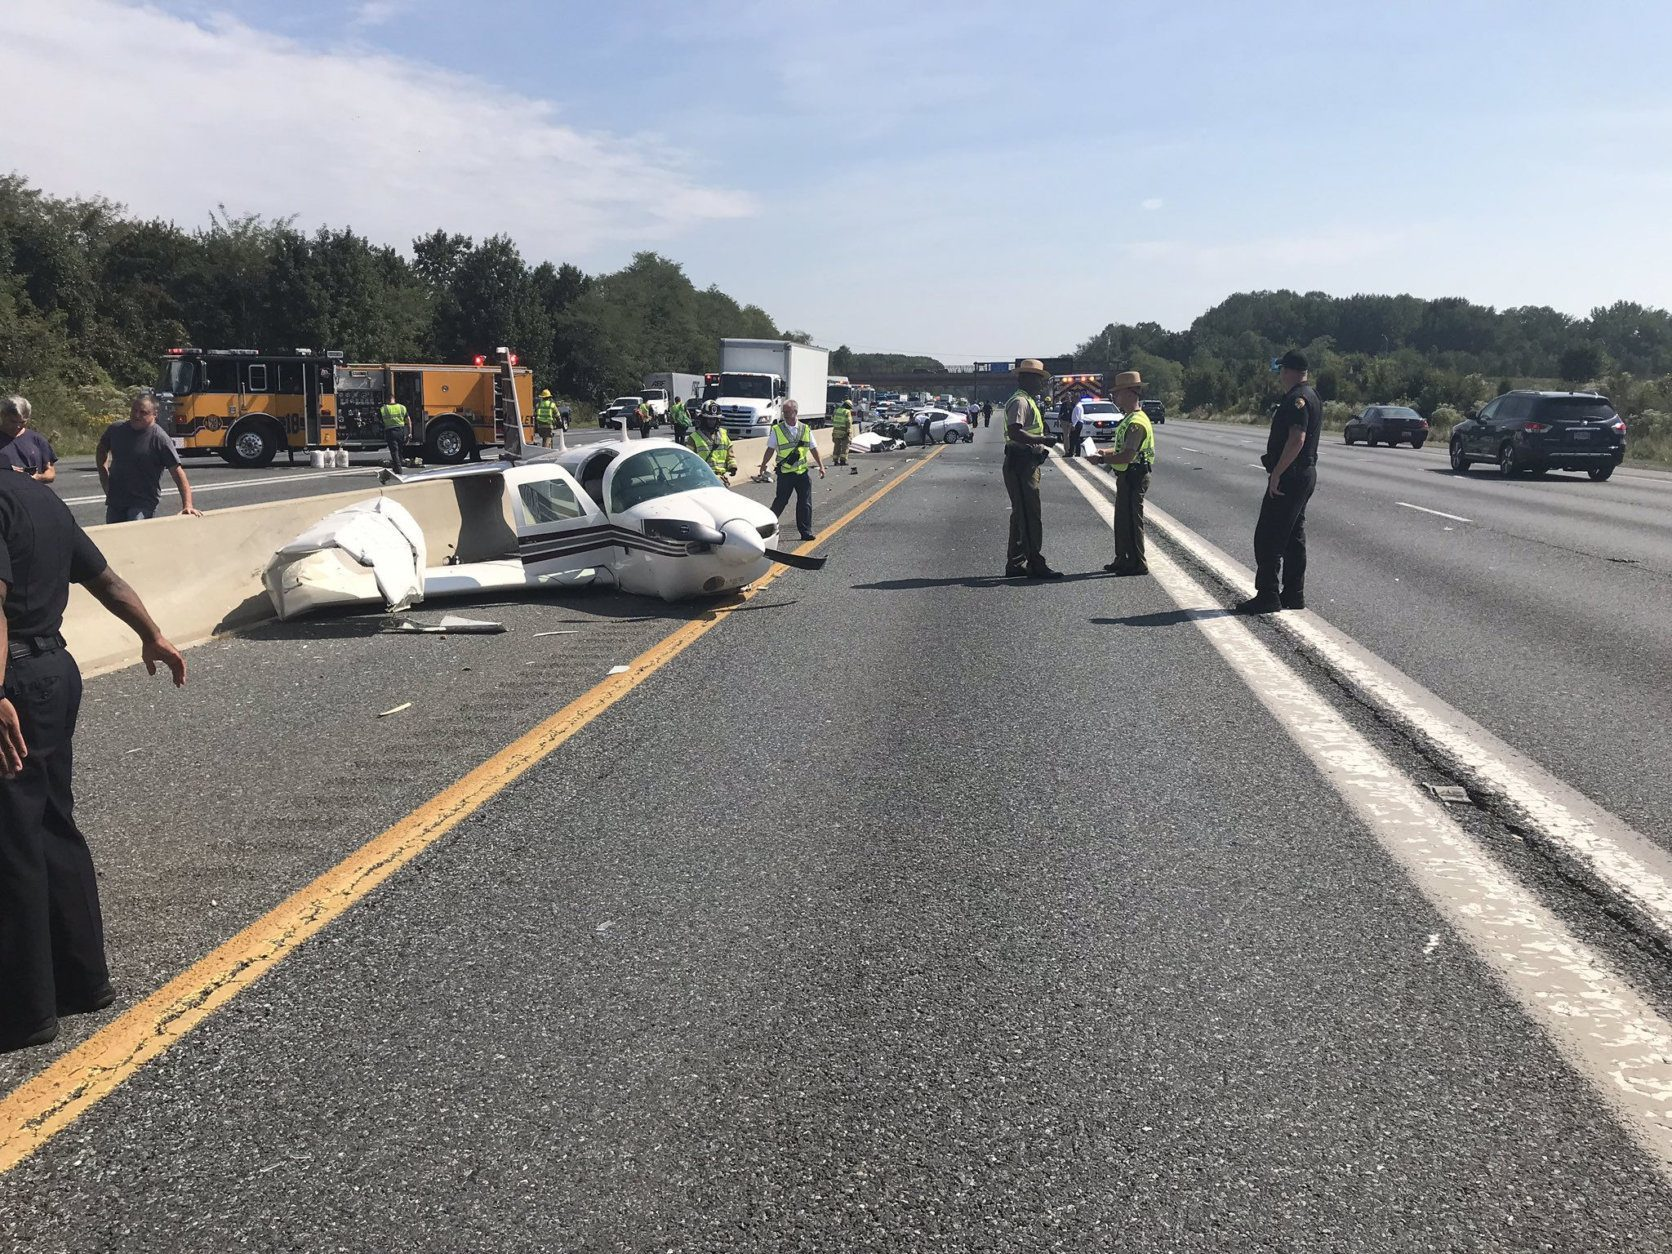 Authorities say it appears the plane was attempting to land at the nearby airport when it crashed into a car on the highway.